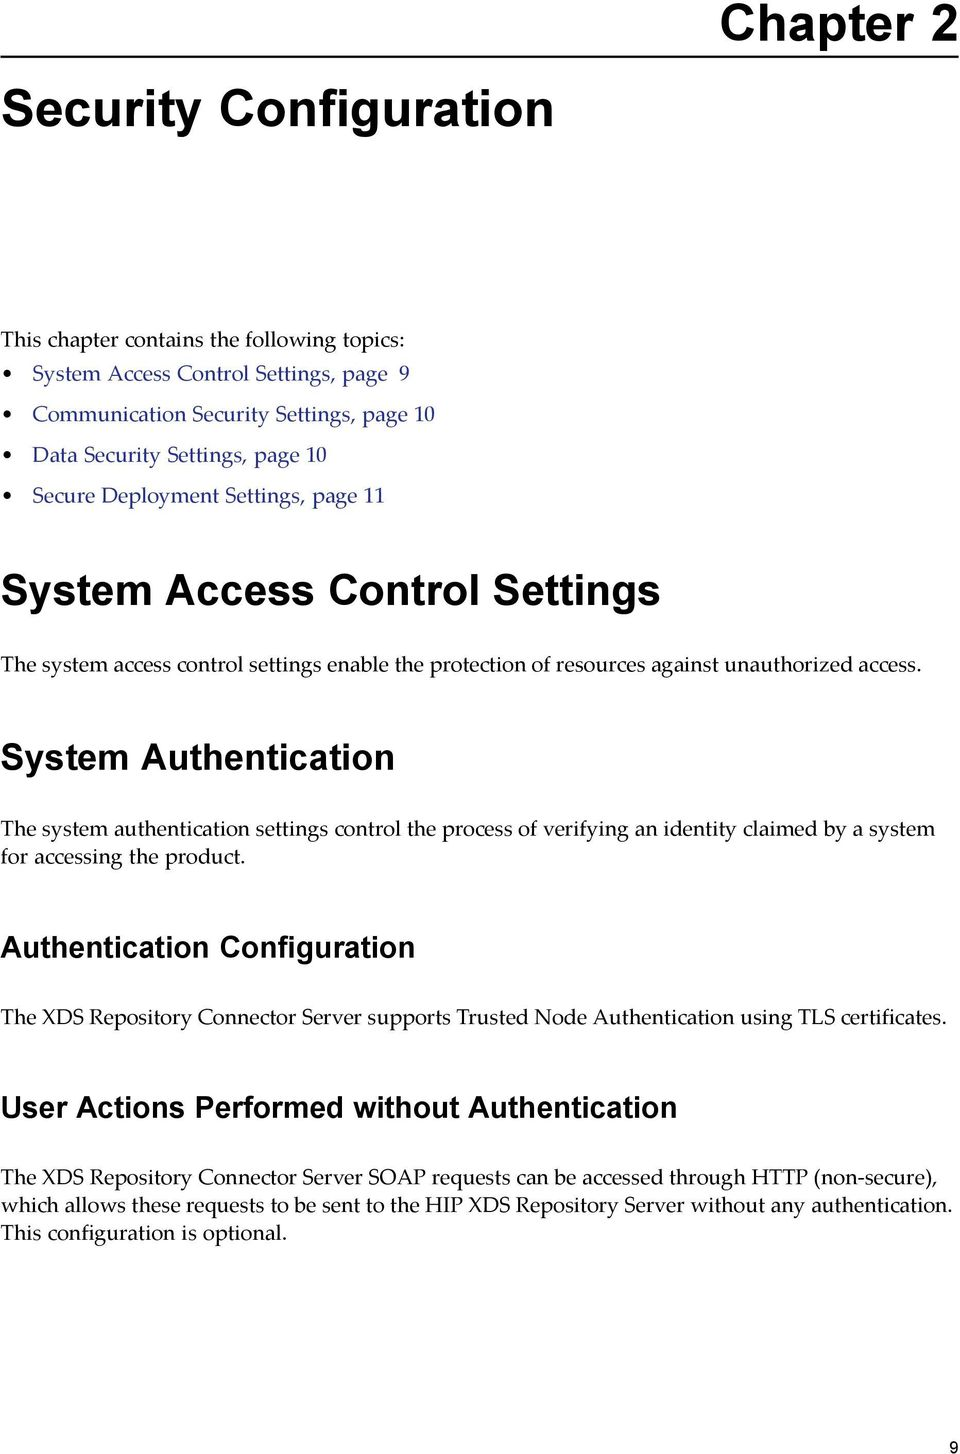 System Authentication The system authentication settings control the process of verifying an identity claimed by a system for accessing the product.